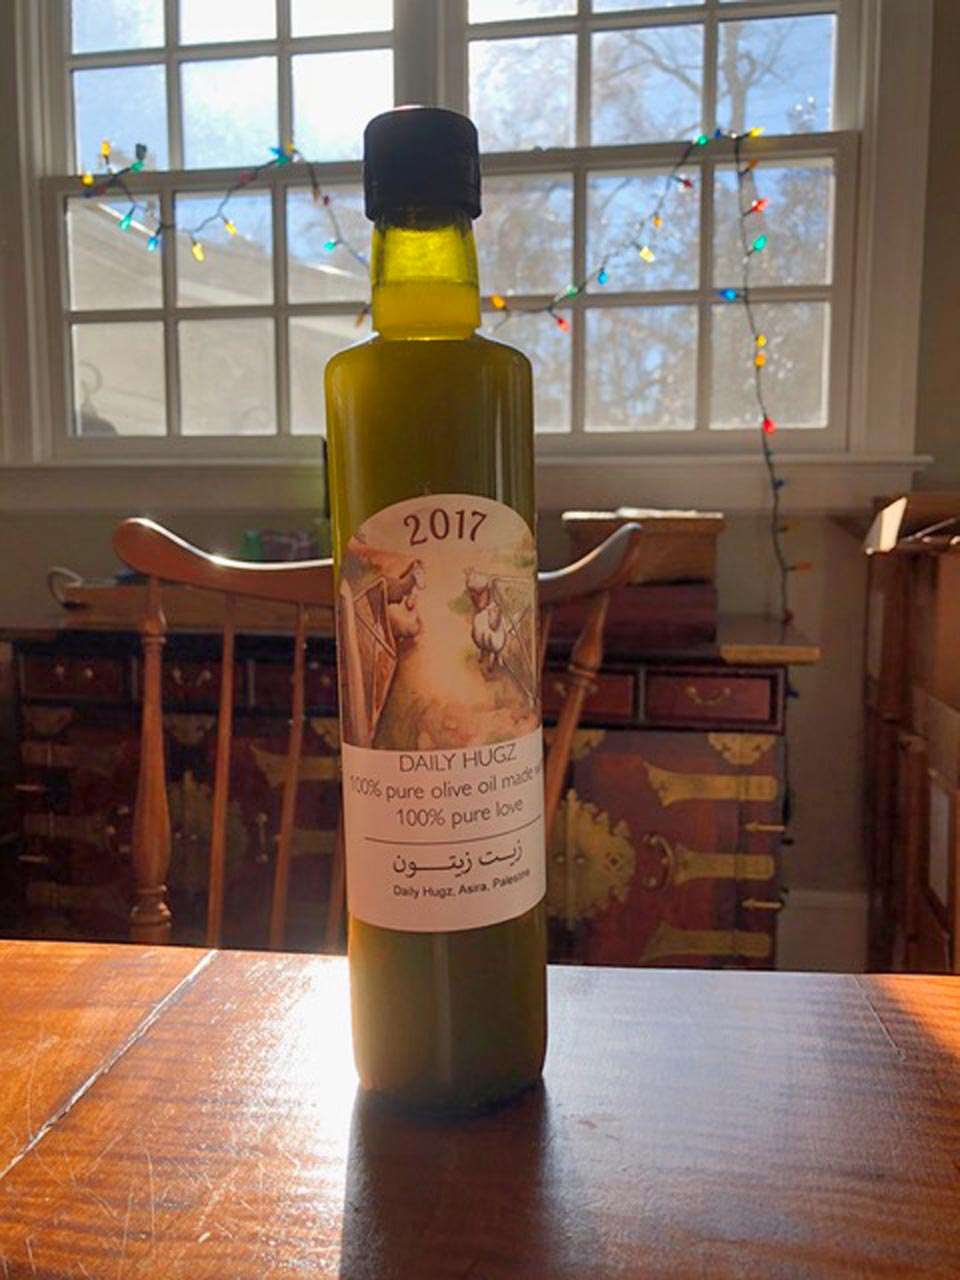 Bottle of Daily Hugz 2017 vintage olive oil